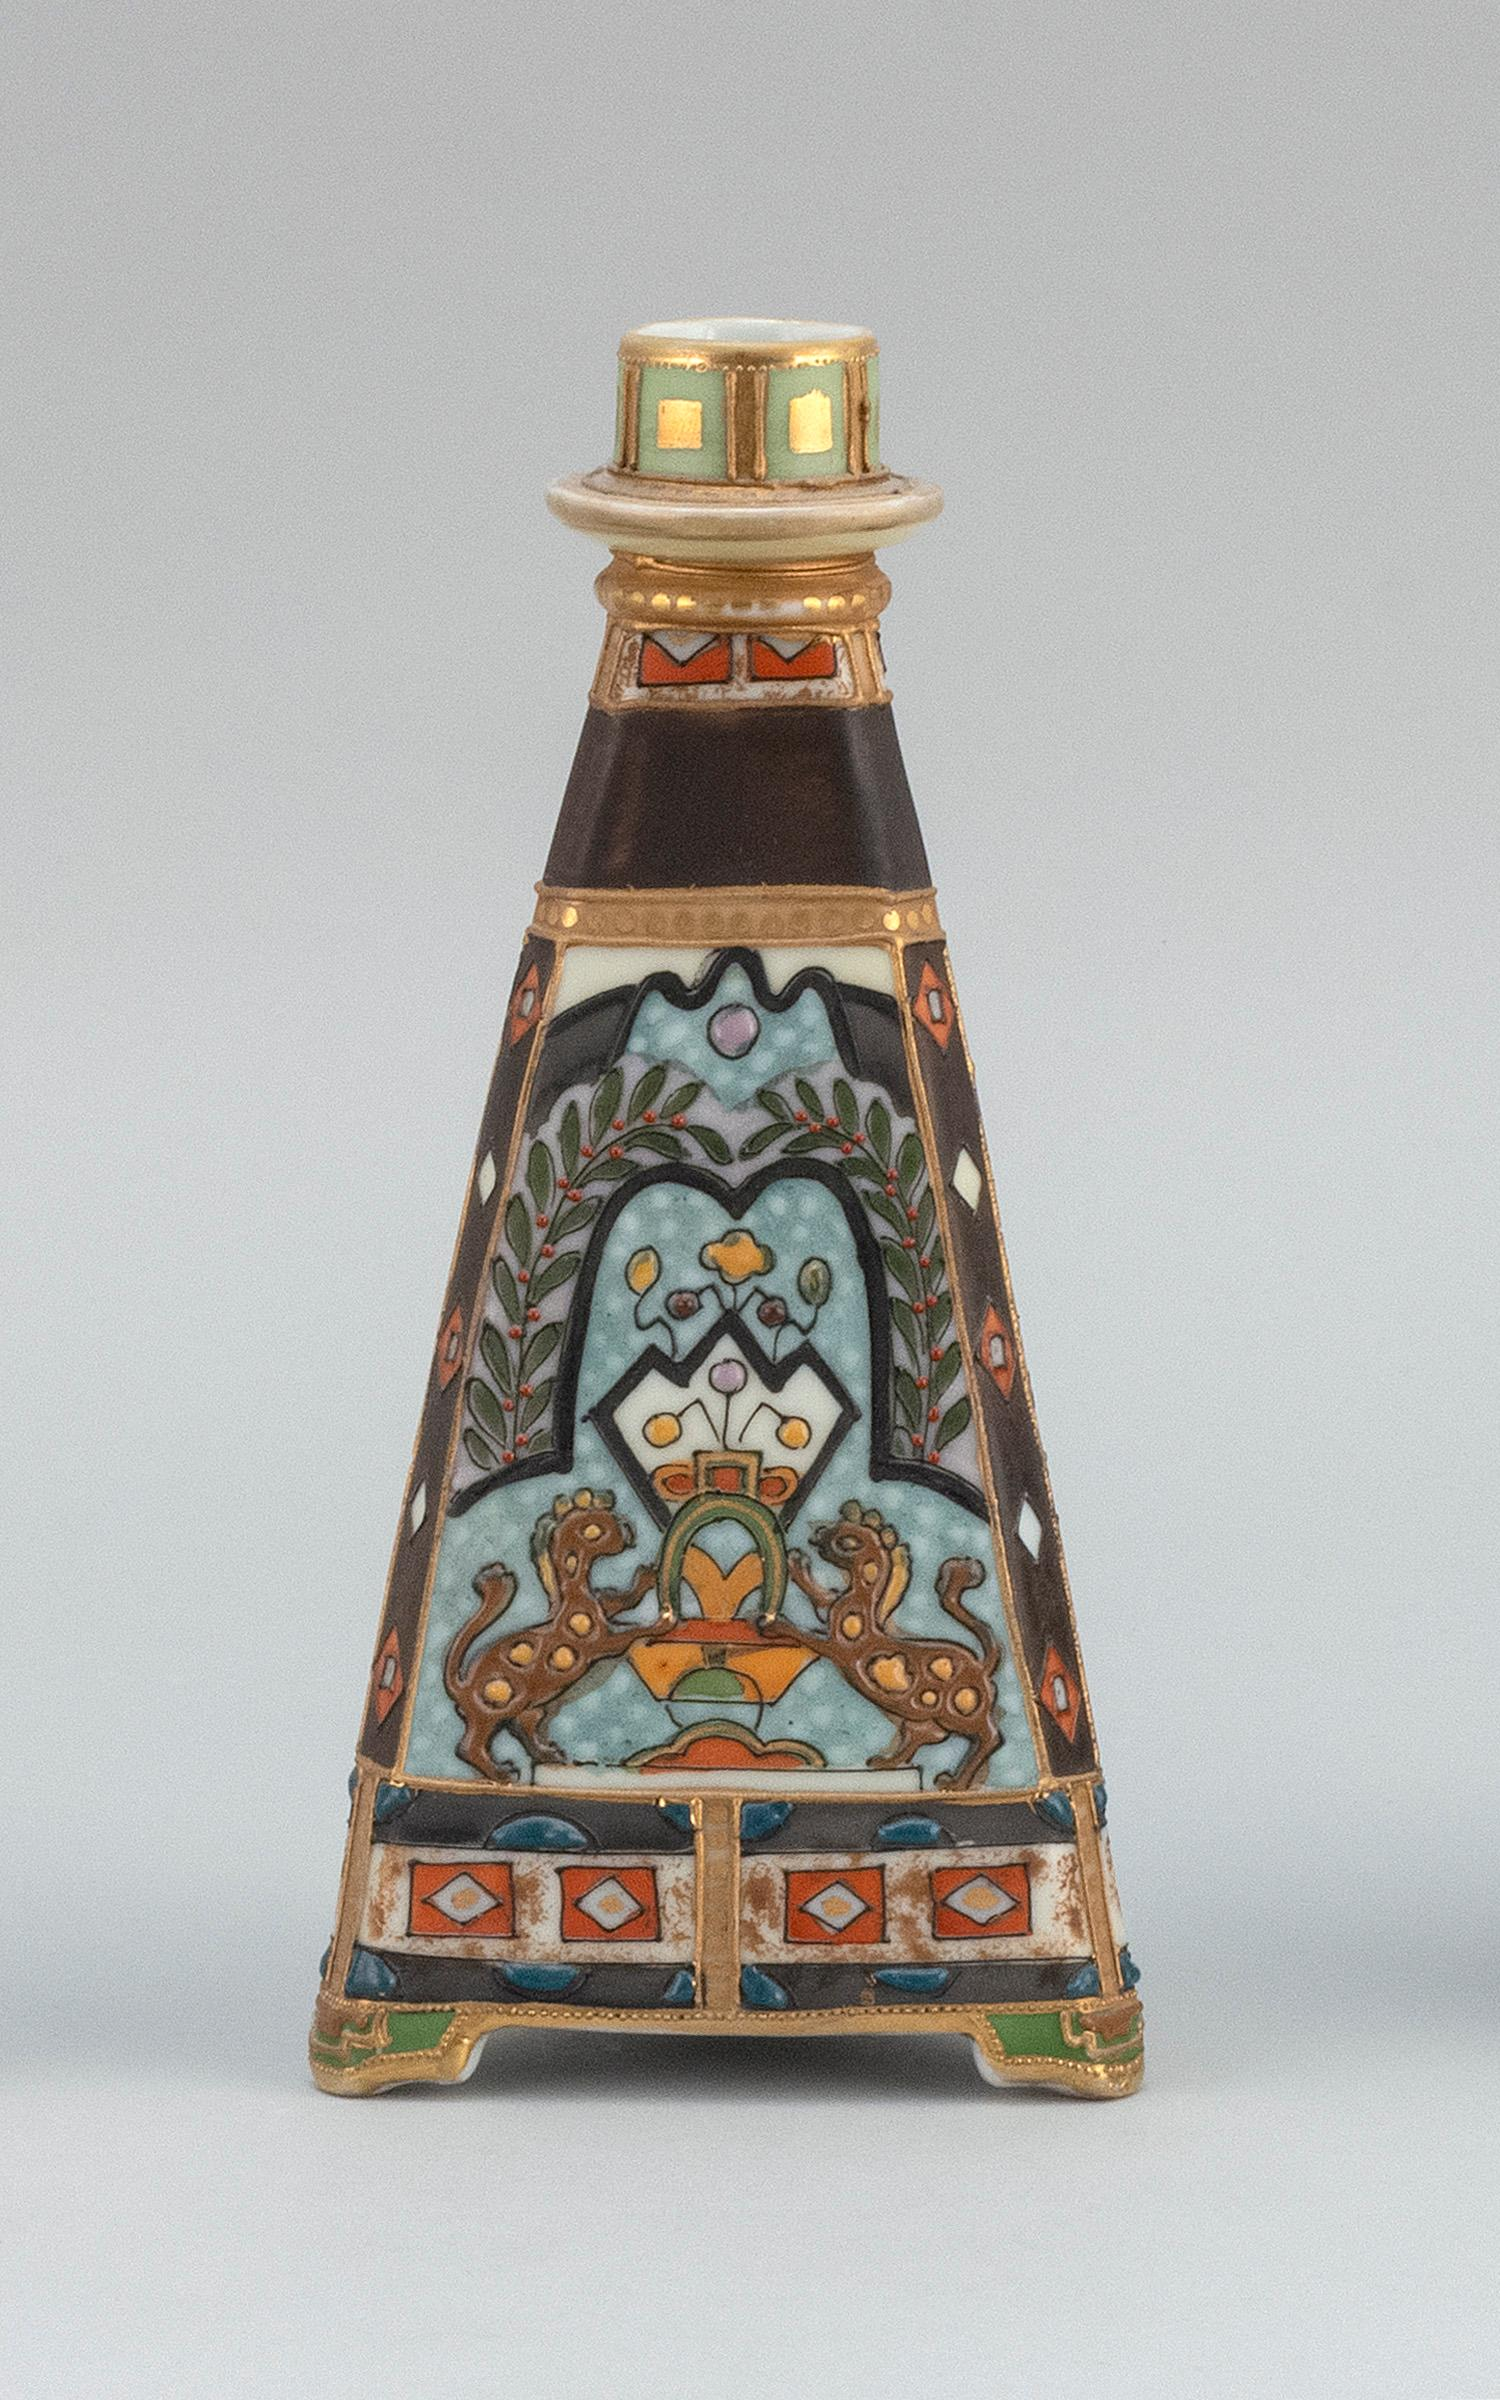 "NIPPON PORCELAIN CANDLESTICK In pyramid form, with relief design of a lion crest. Van Patten #47 mark on base. Height 8""."